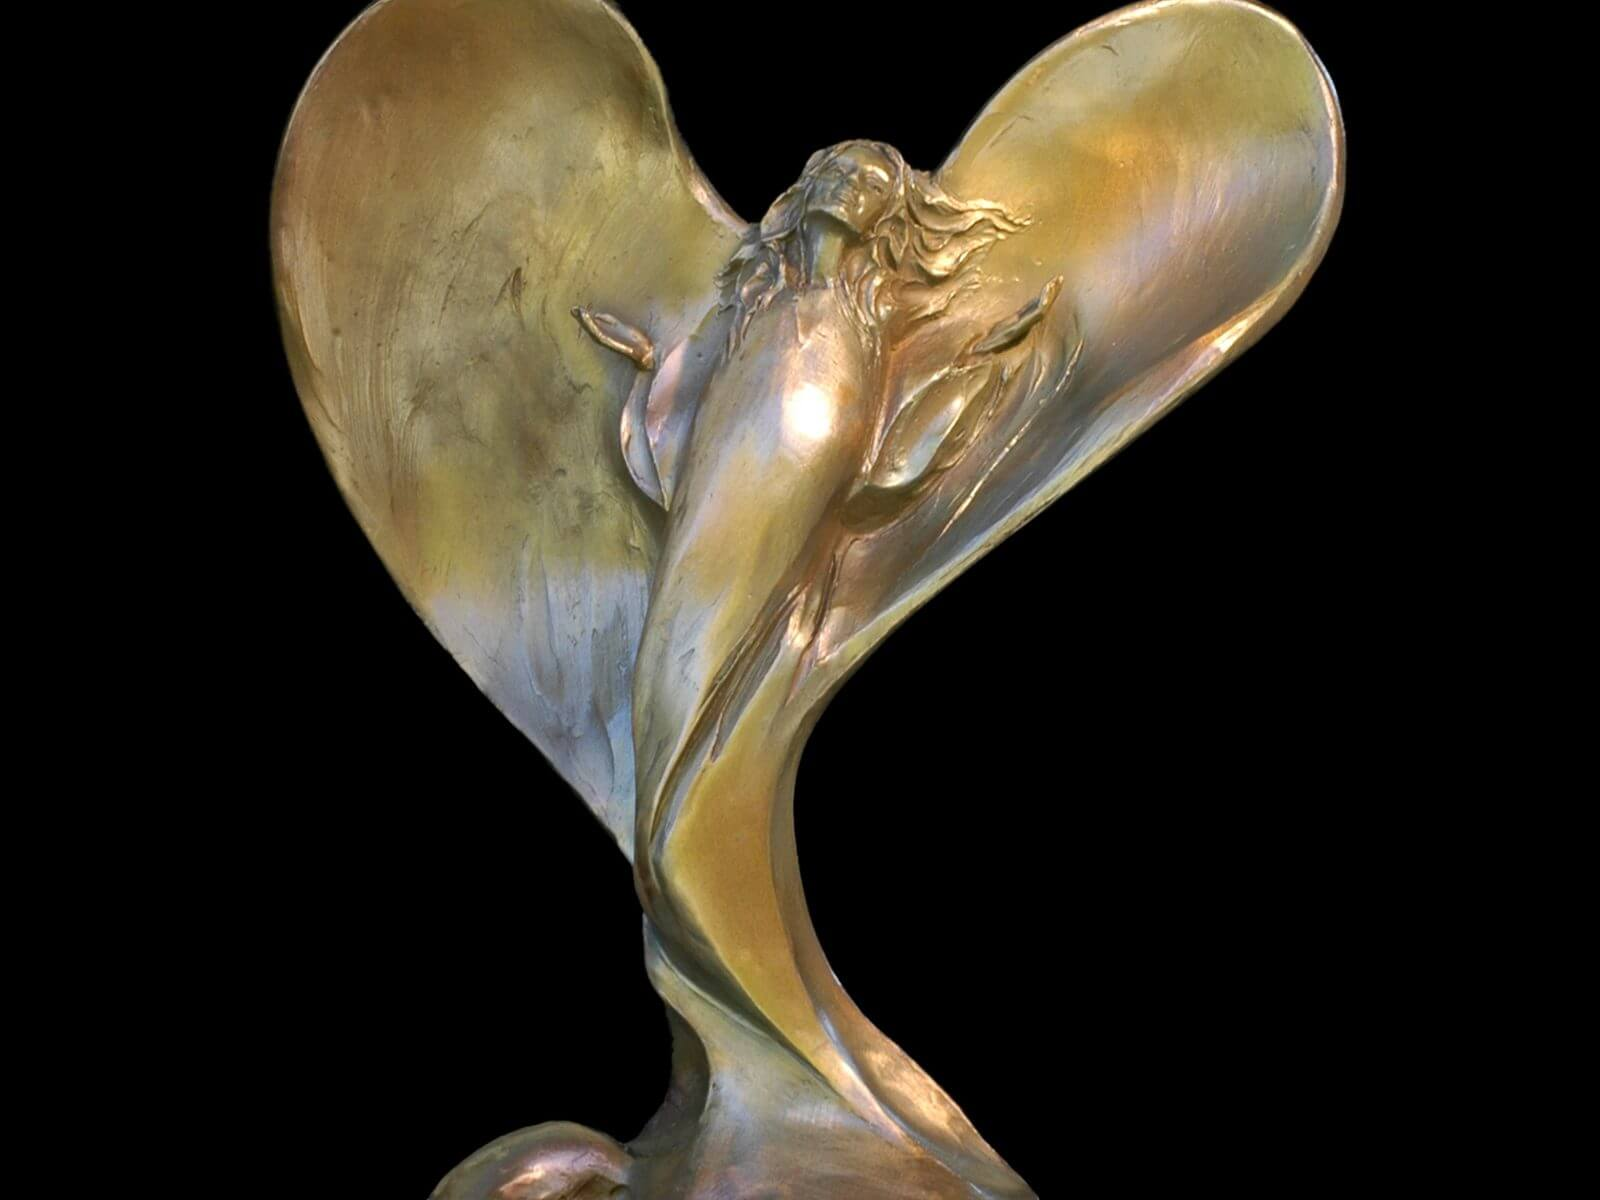 Morning Glory a figurative bronze angel sculpture bysculptor Andrew DeVries